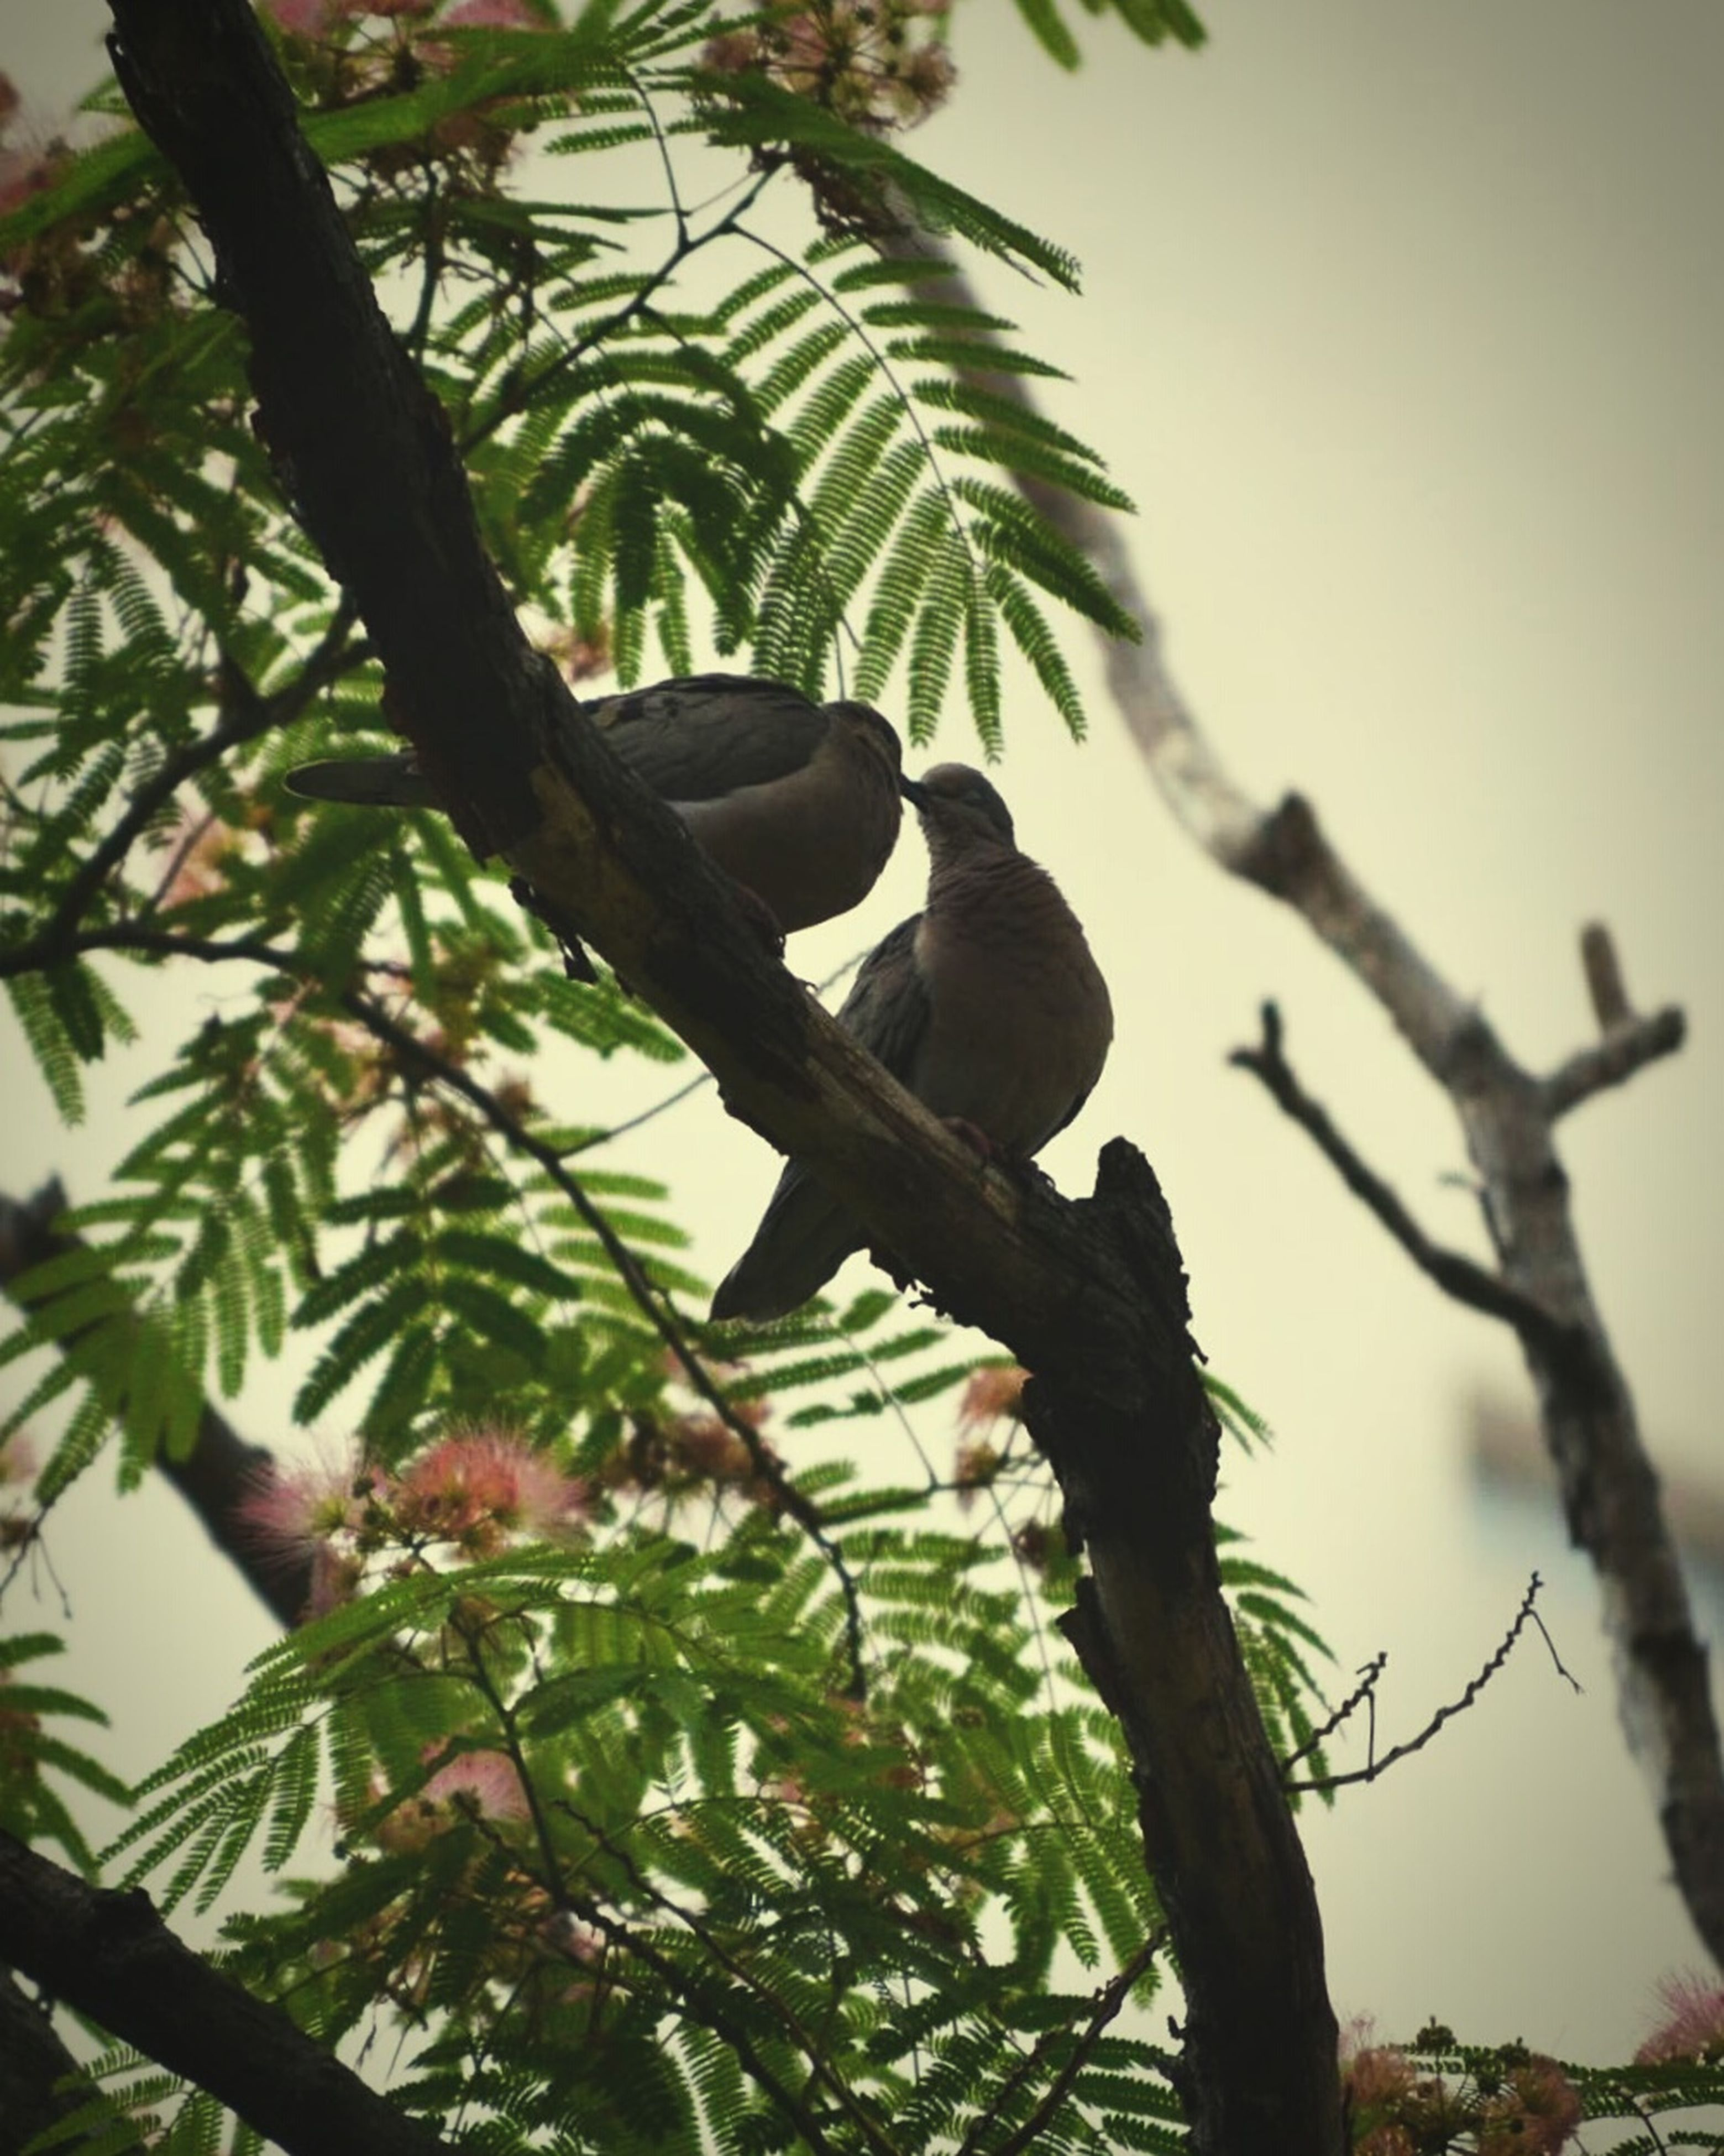 tree, branch, low angle view, bird, growth, clear sky, leaf, nature, animals in the wild, animal themes, focus on foreground, wildlife, sky, perching, beauty in nature, day, close-up, outdoors, no people, one animal